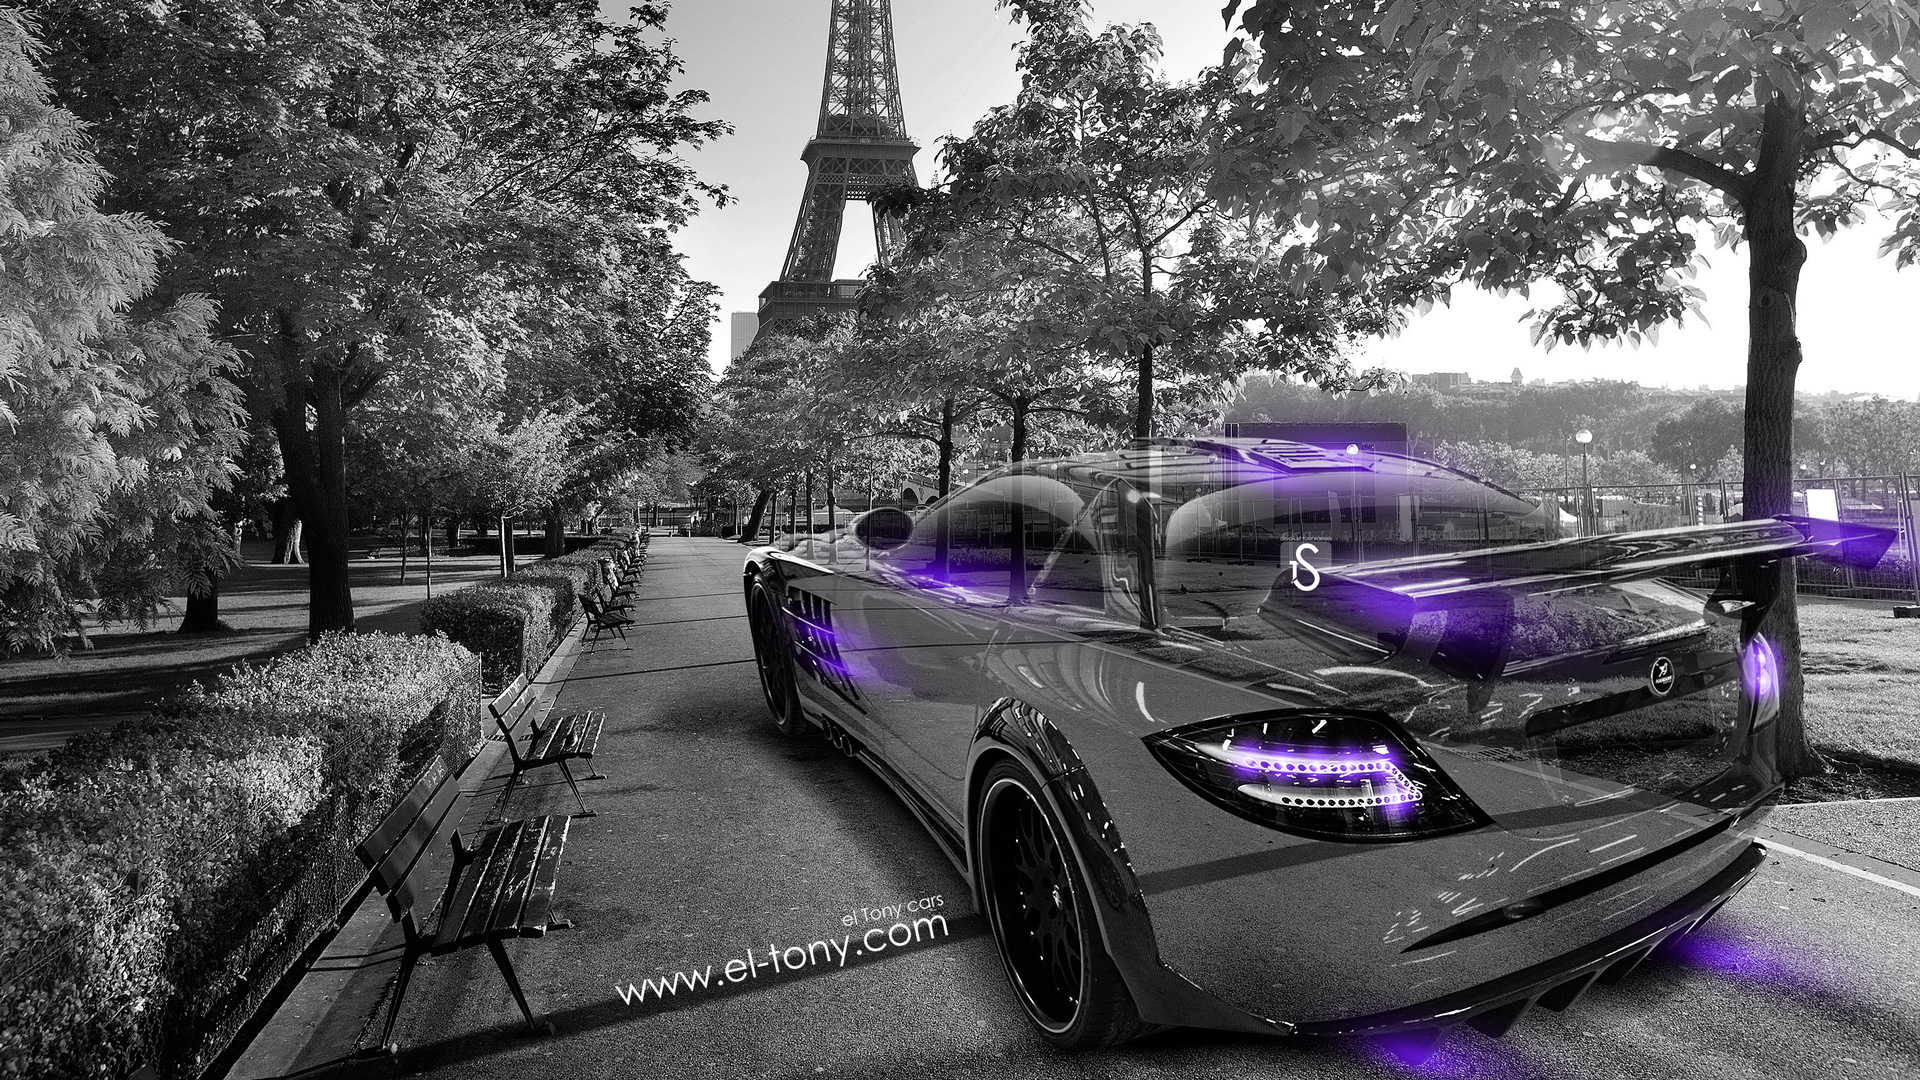 Mercedes-Benz-SLR-McLaren-Crystal-Day-Paris-Car-2014-Violet-Neon-design-by-Tony-Kokhan-[www.el-tony.com]